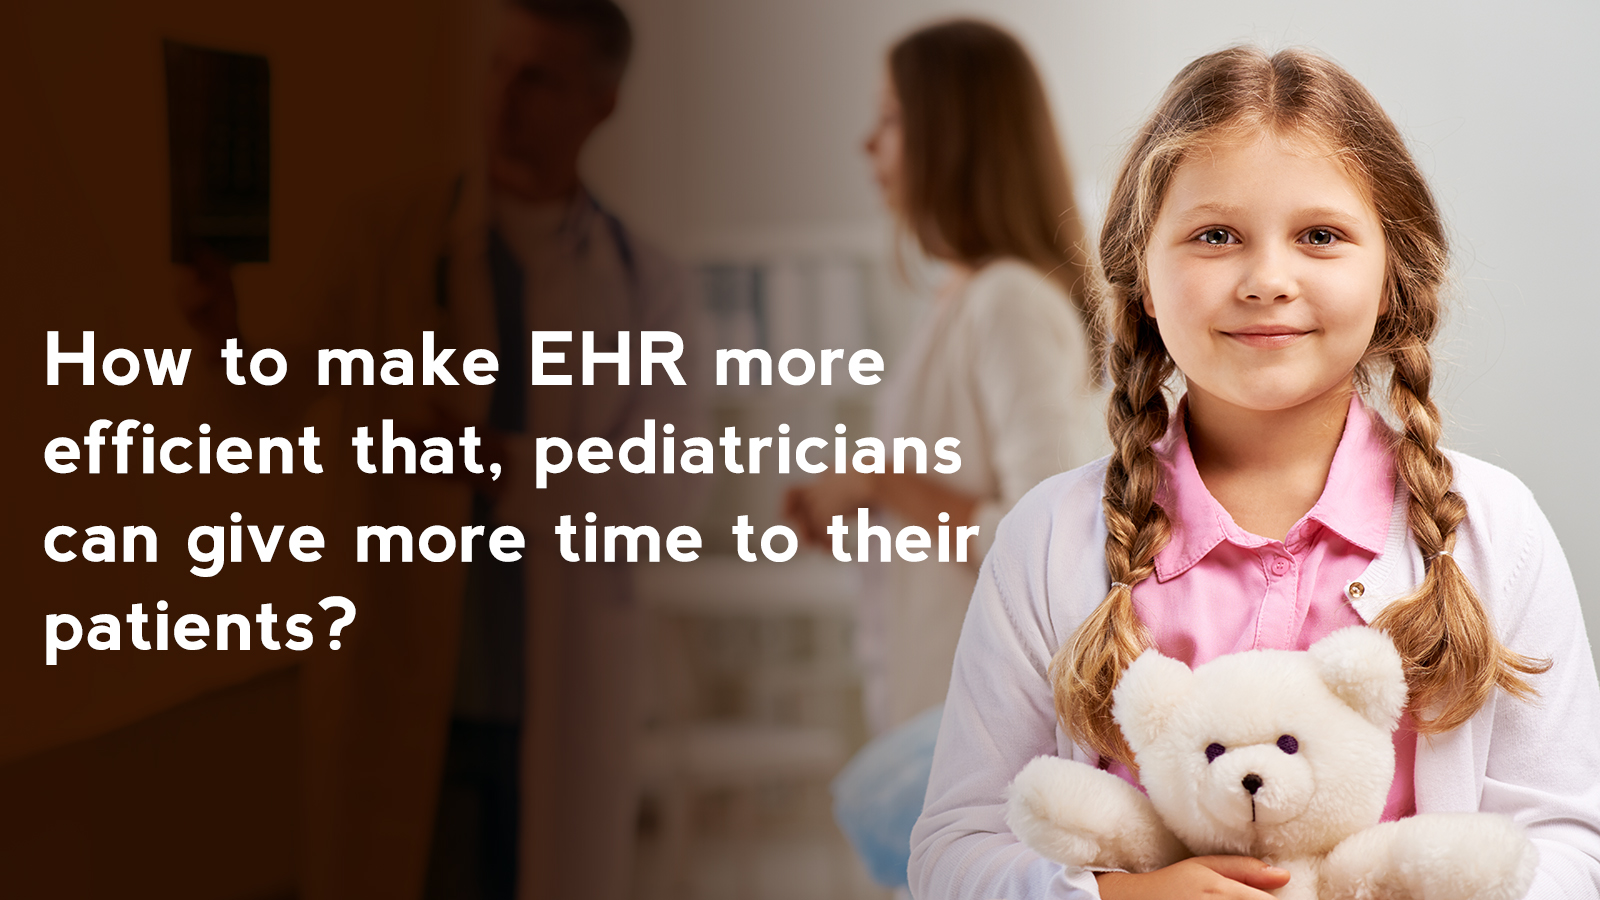 iPatientCare Blog - How to make EHR more efficient that, pediatricians can give more time to their patients?